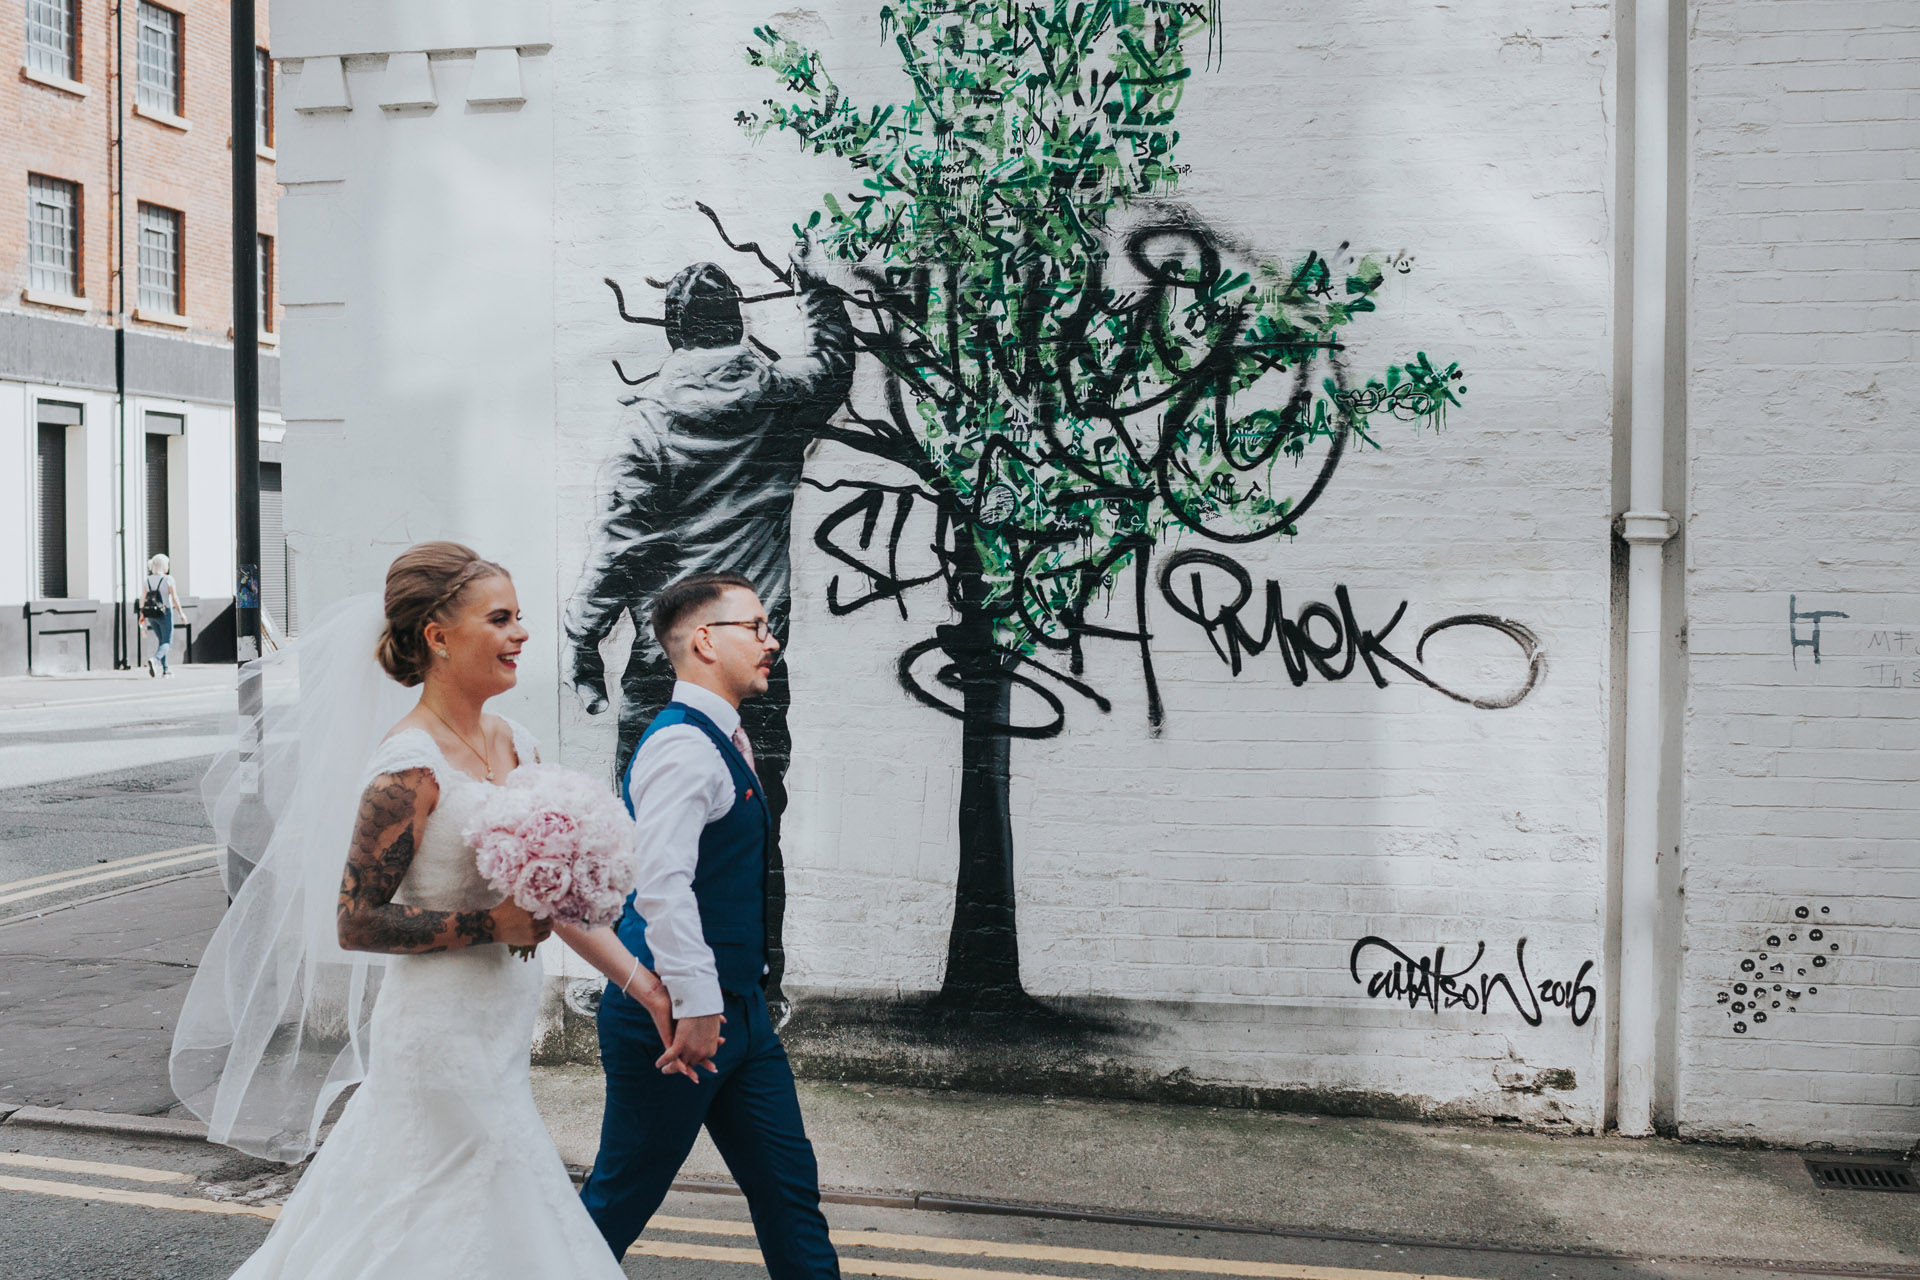 Bride and Groom walk past tree graffiti on Faraday Street, Manchester. Photograph processed in colour.